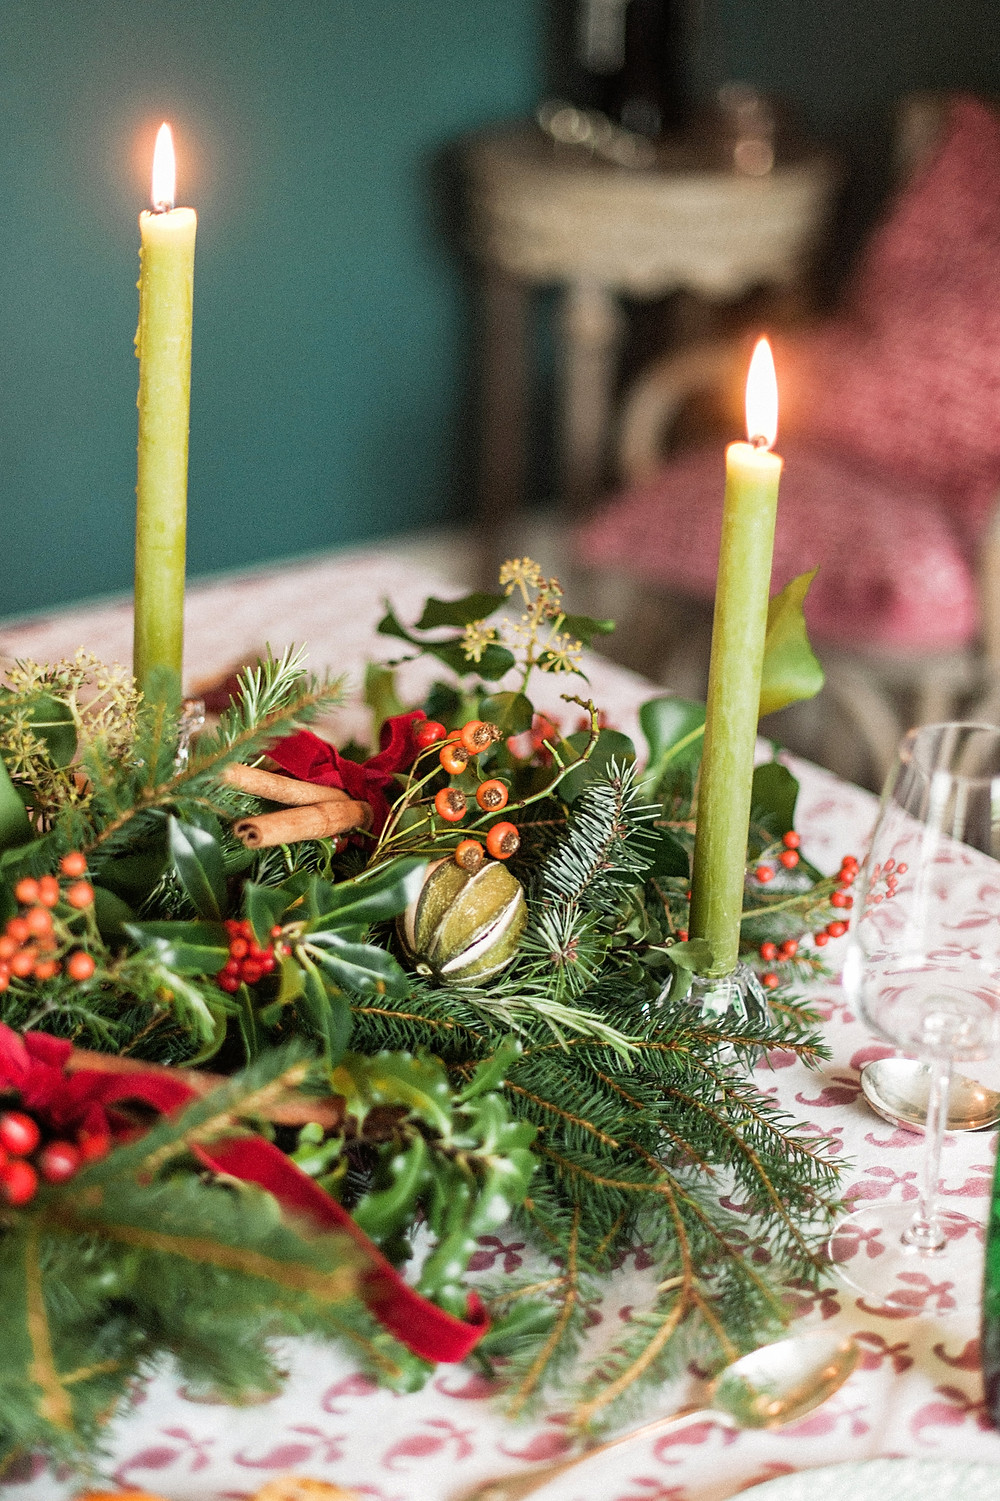 Beautiful festive decoration by Dorset Florist - Martha and the Meadow.